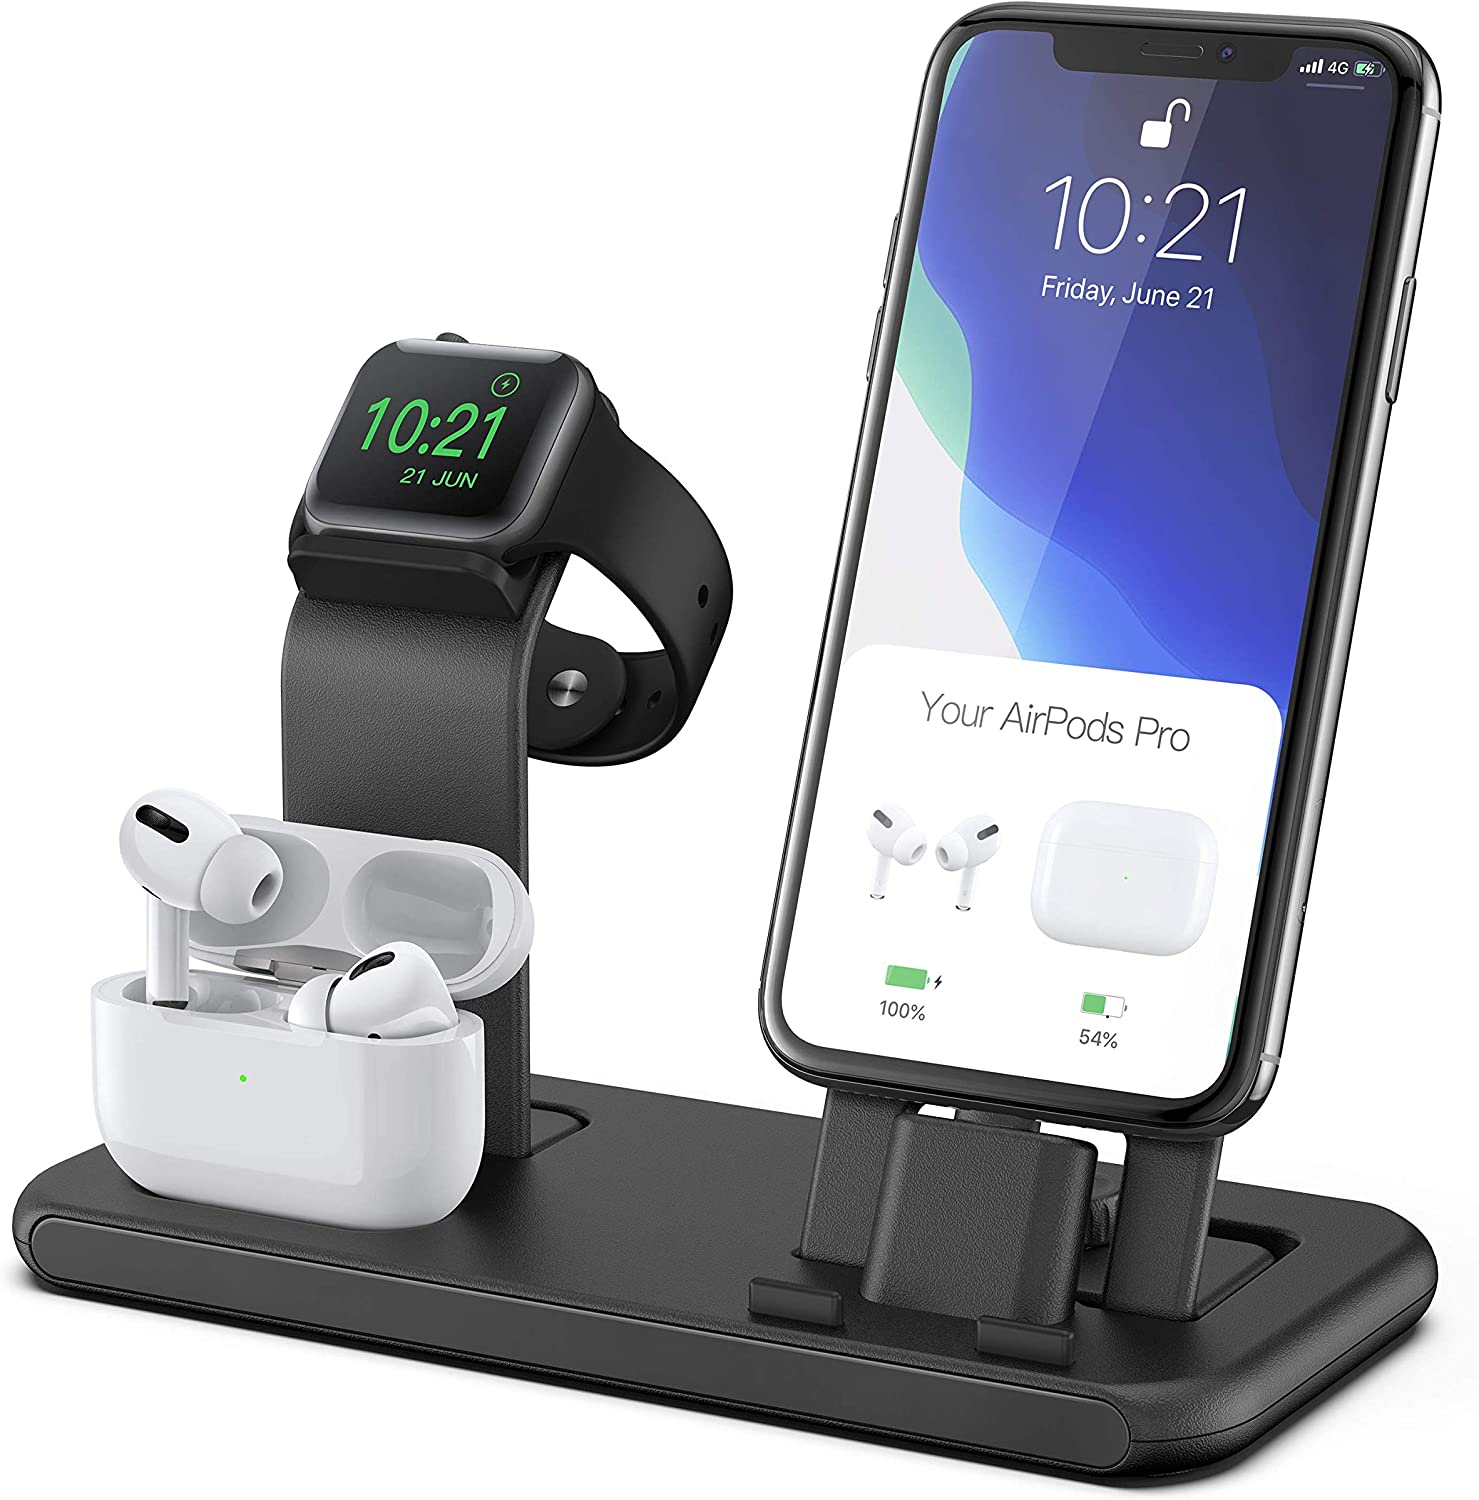 Conido 3 in 1 Charging Station for Apple Products, Stand for Apple Watch Series SE/6/5/4/3/2/1, AirPods Pro/2/1 Charging Dock, Charger Station for iPhone SE /11Pro Max/XS Max/XR/8 Plus/7 Plus/6S Plus